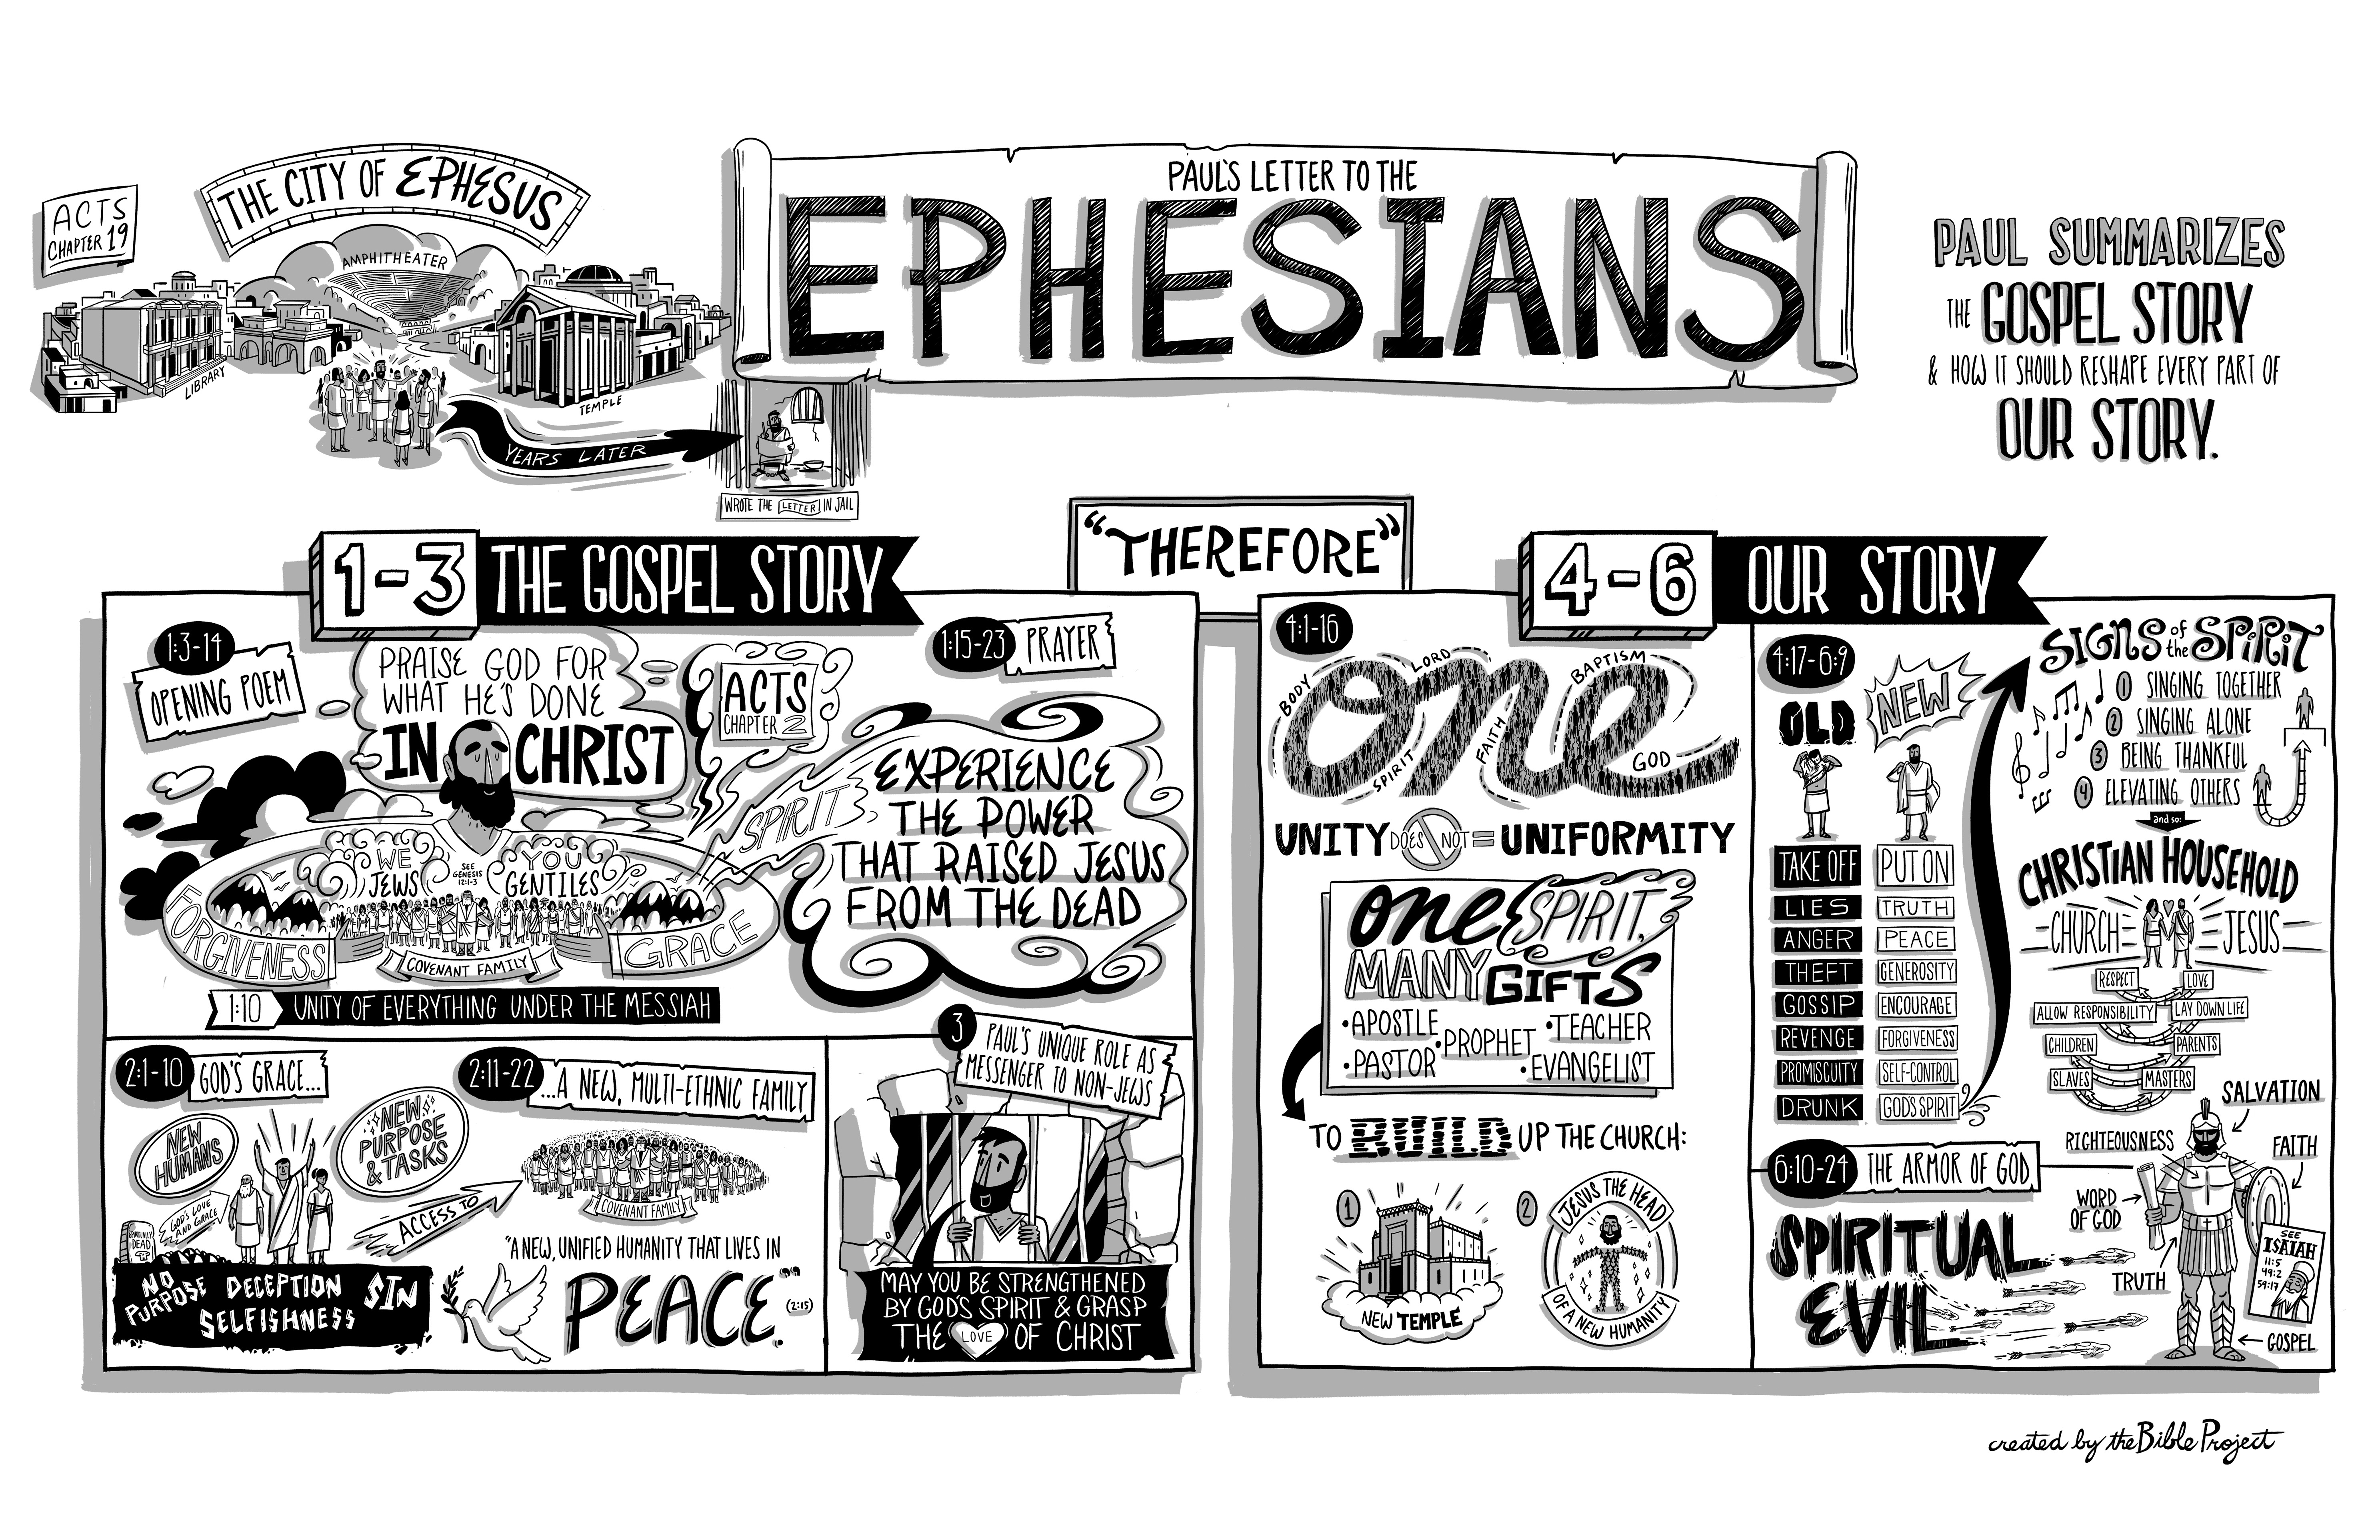 the book of ephesians tells how the gospel affects our everyday